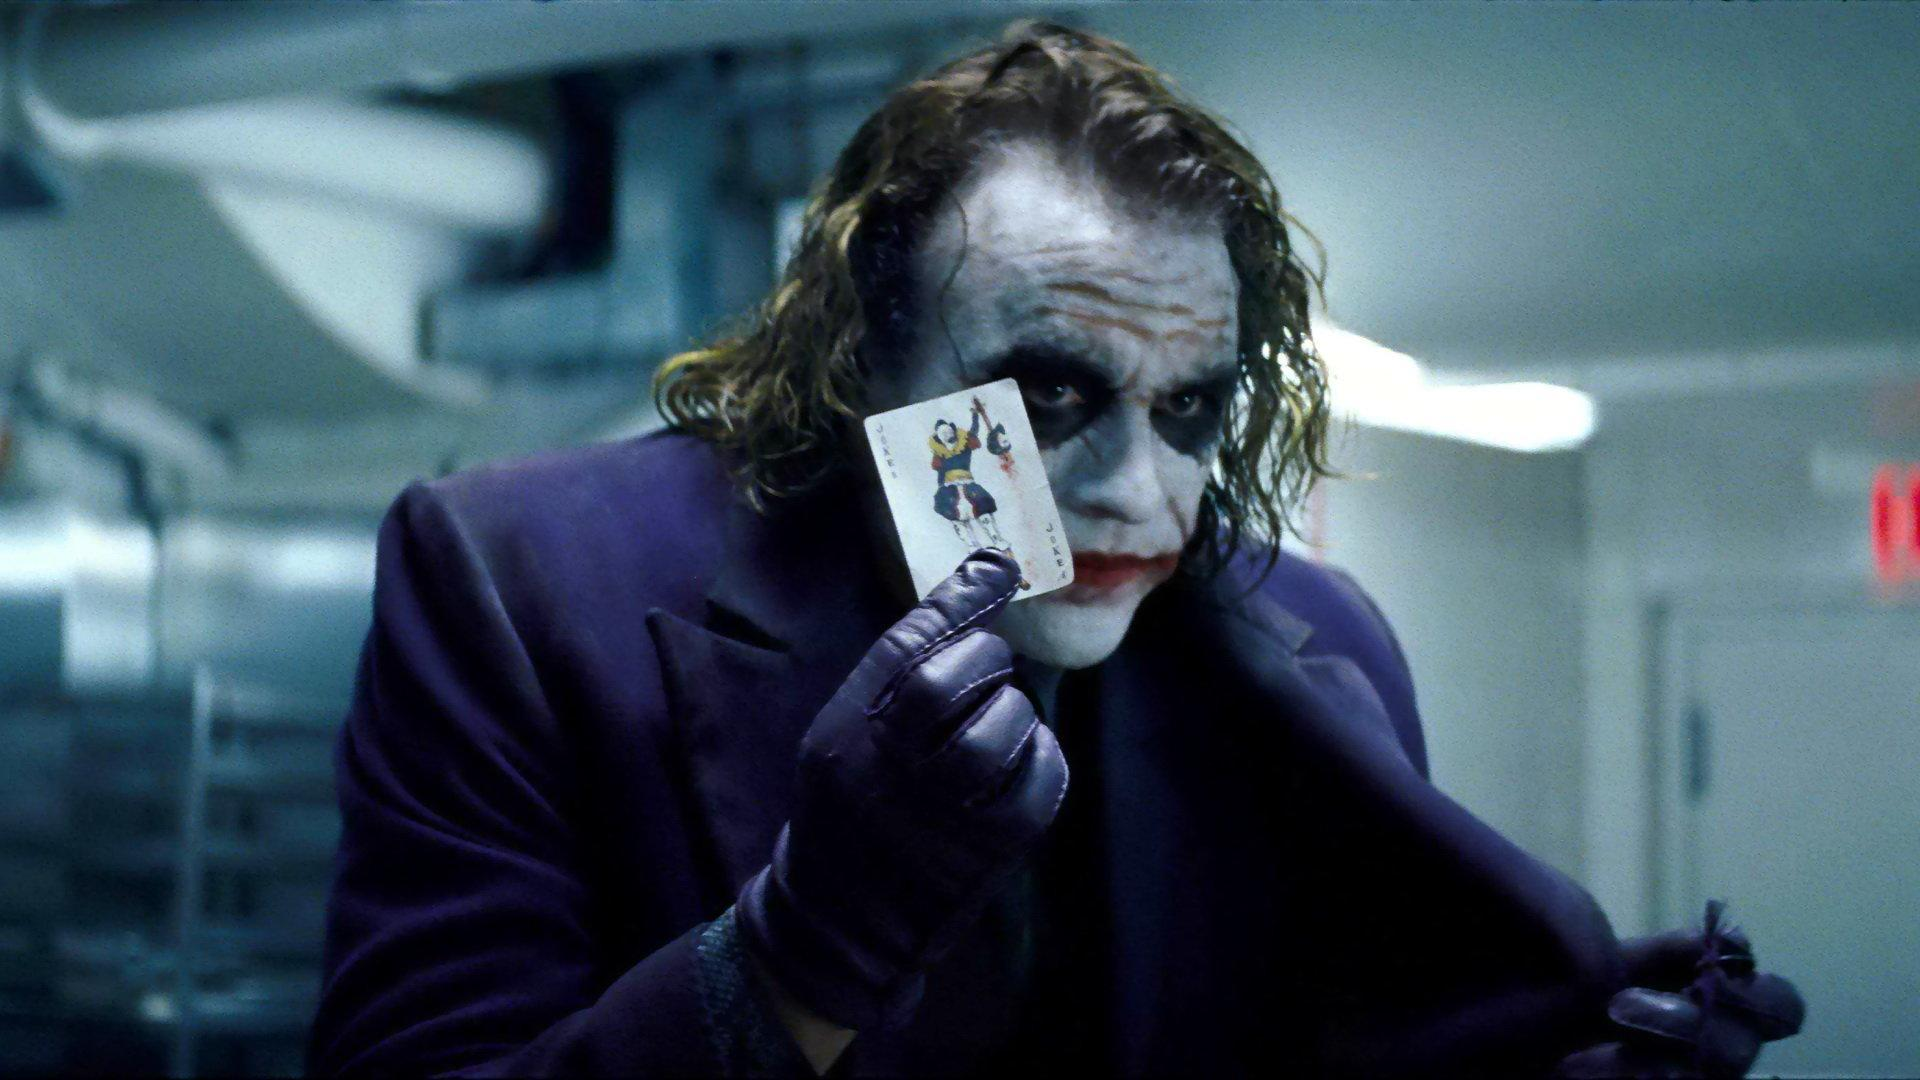 The Joker   The Dark Knight wallpaper 5831 1920x1080